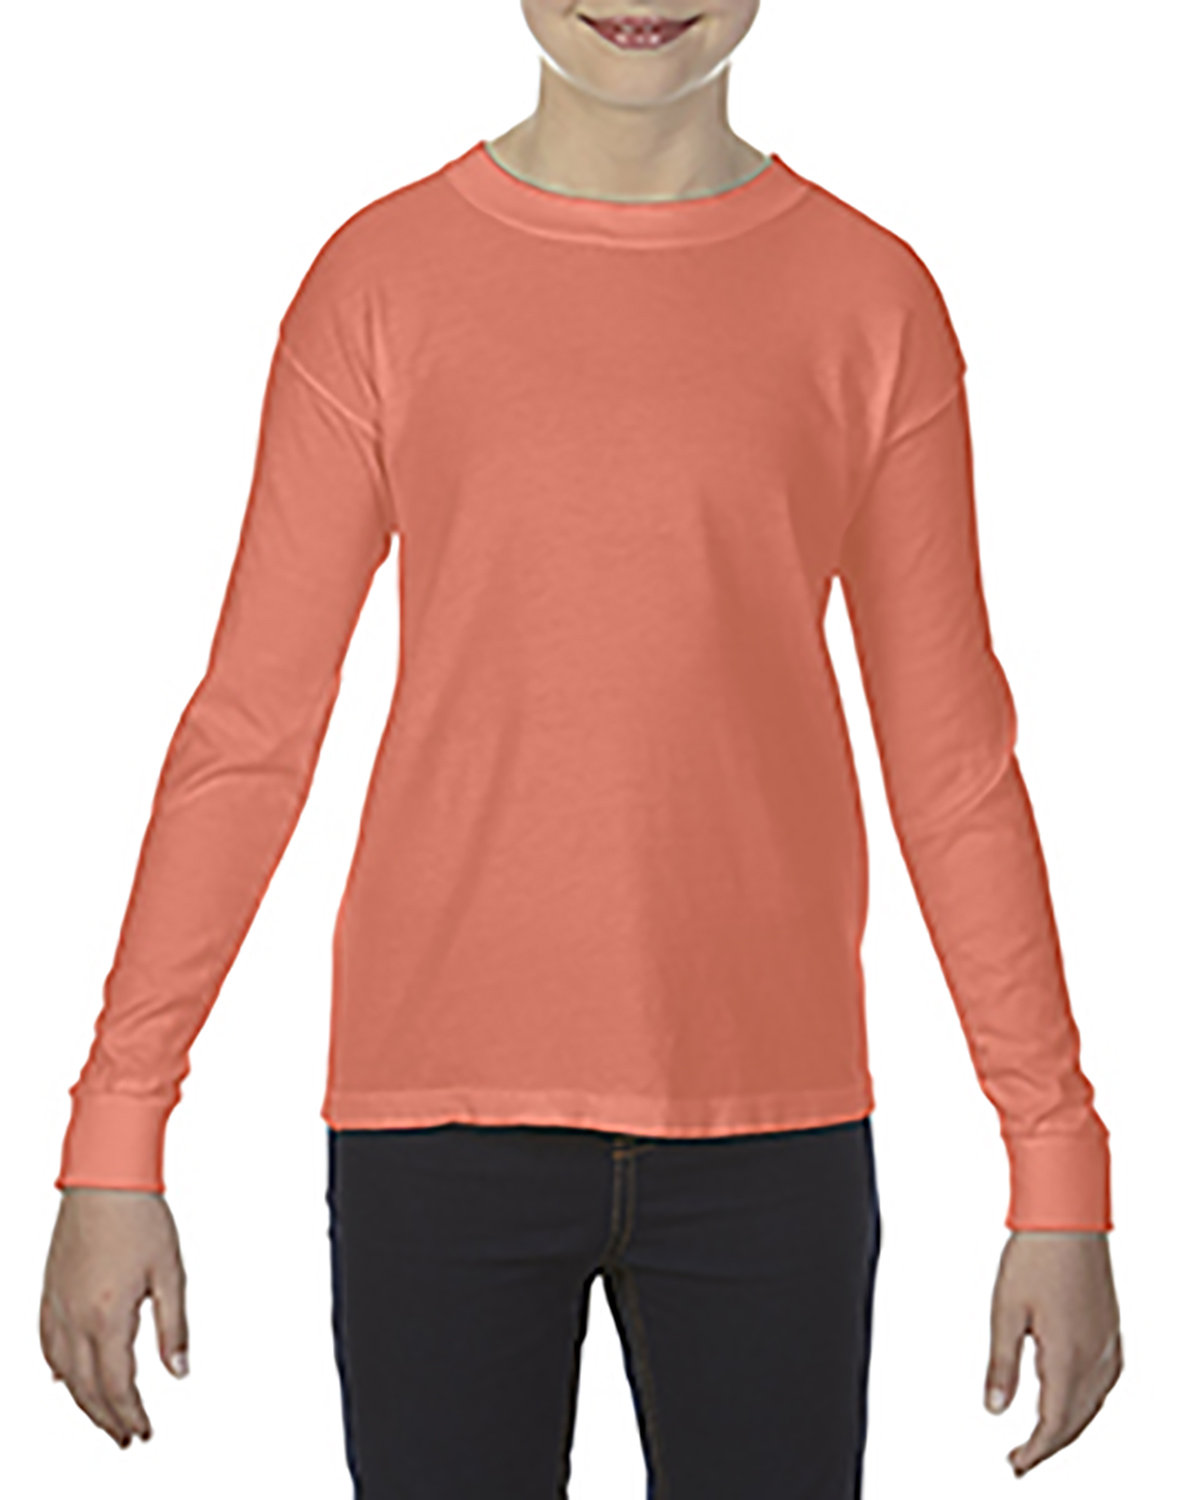 Comfort Colors Youth Garment-Dyed Long-Sleeve T-Shirt BRIGHT SALMON